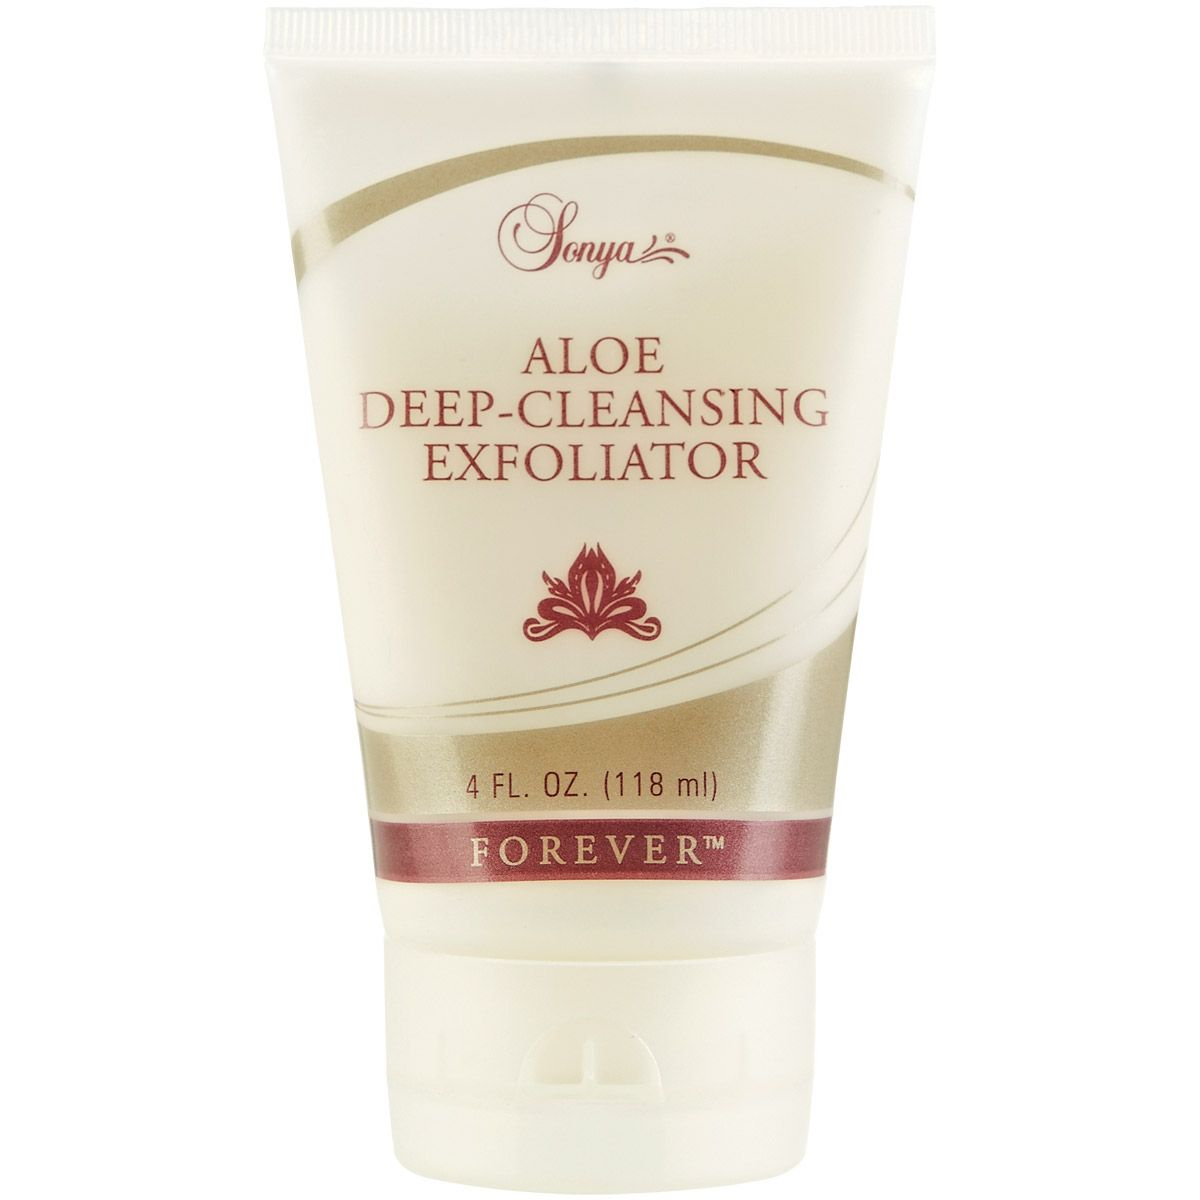 Exfoliant Aloe Deep Cleansing Exfoliator, 118 ml